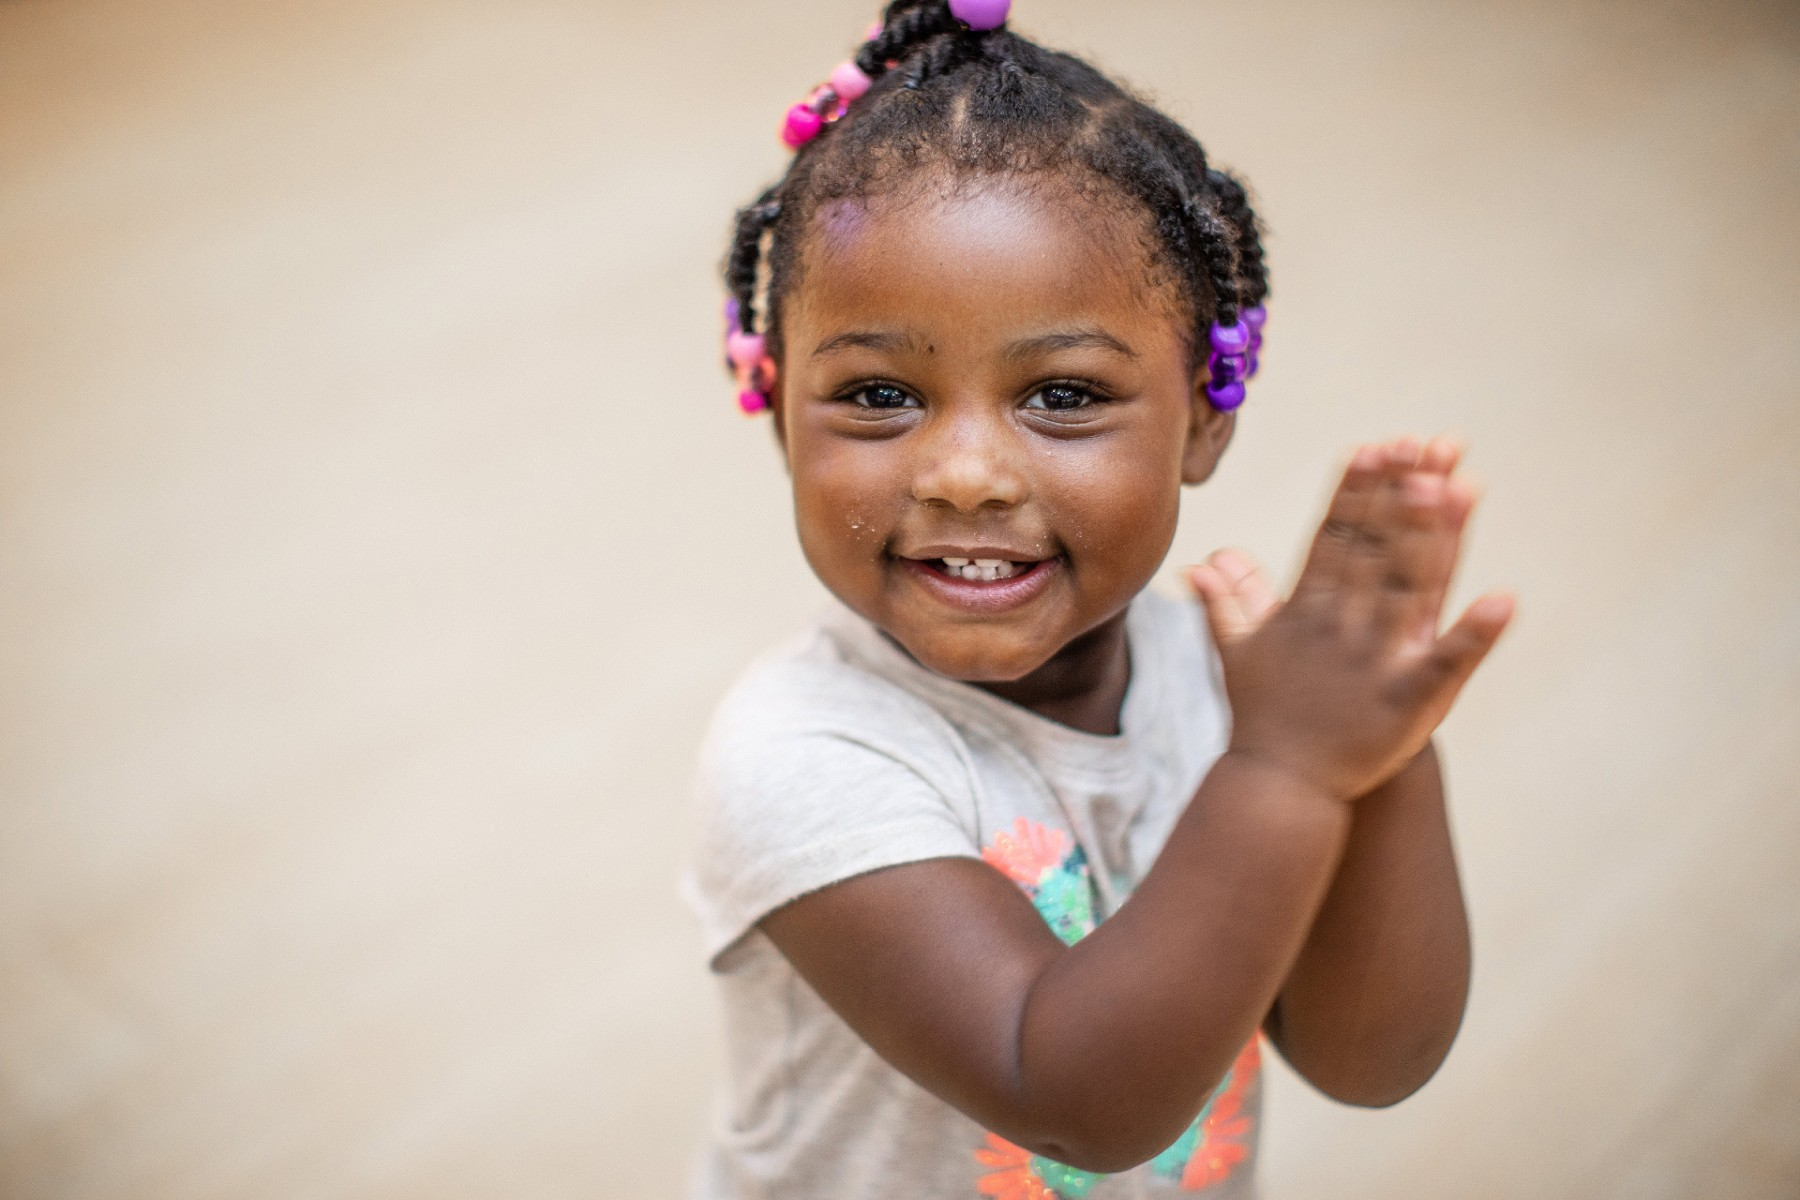 Girl Smiling and Clapping